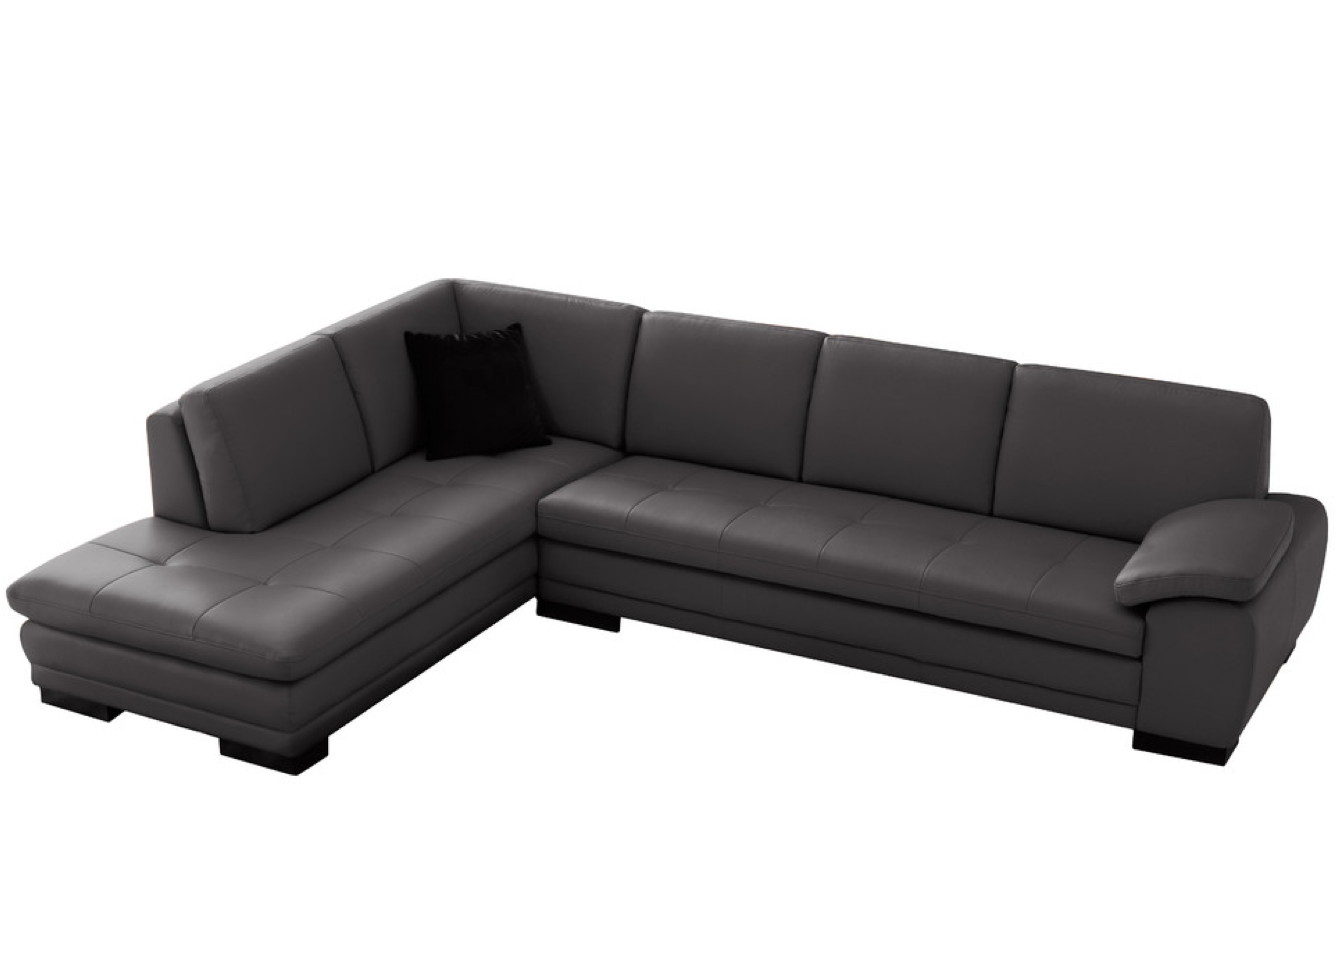 625 Modern Italian Leather Sectional by Ju0026M Gray Left Facing Chaise - $3599  sc 1 st  Pinterest : logan sectional sofa - Sectionals, Sofas & Couches